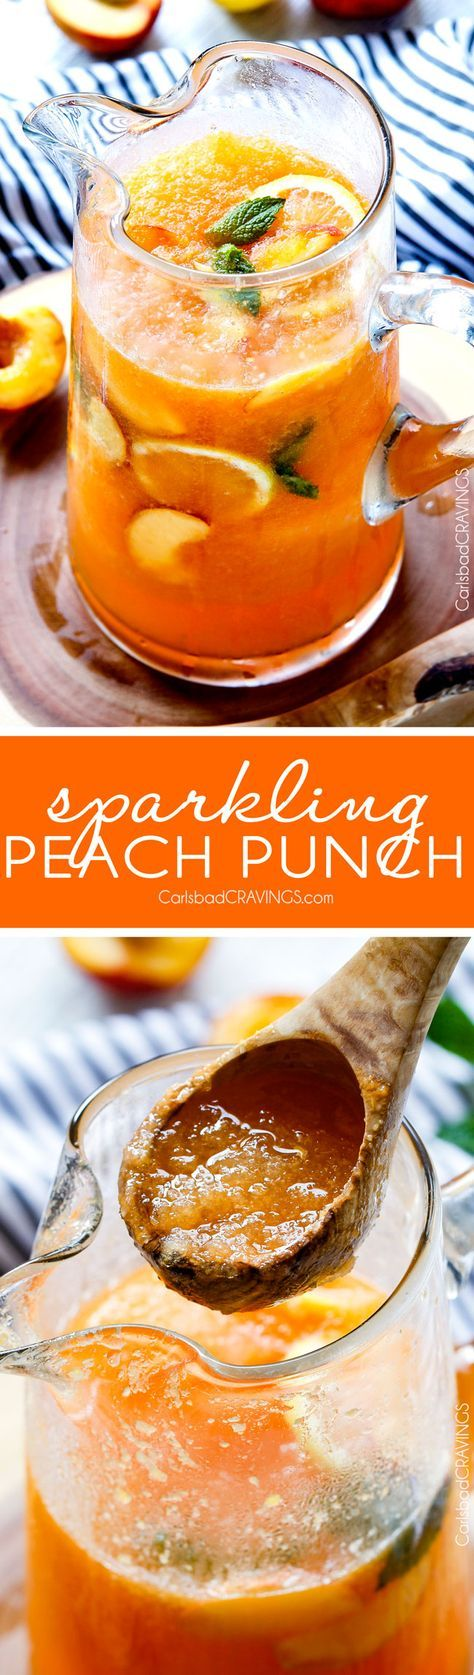 Sparkling Peach Punch (non alcoholic) - vibrant, refreshing, flavorful and the perfect amount of slush! I love making this for baby/bridal showers and potlucks and everyone else loves it too! #giveaway